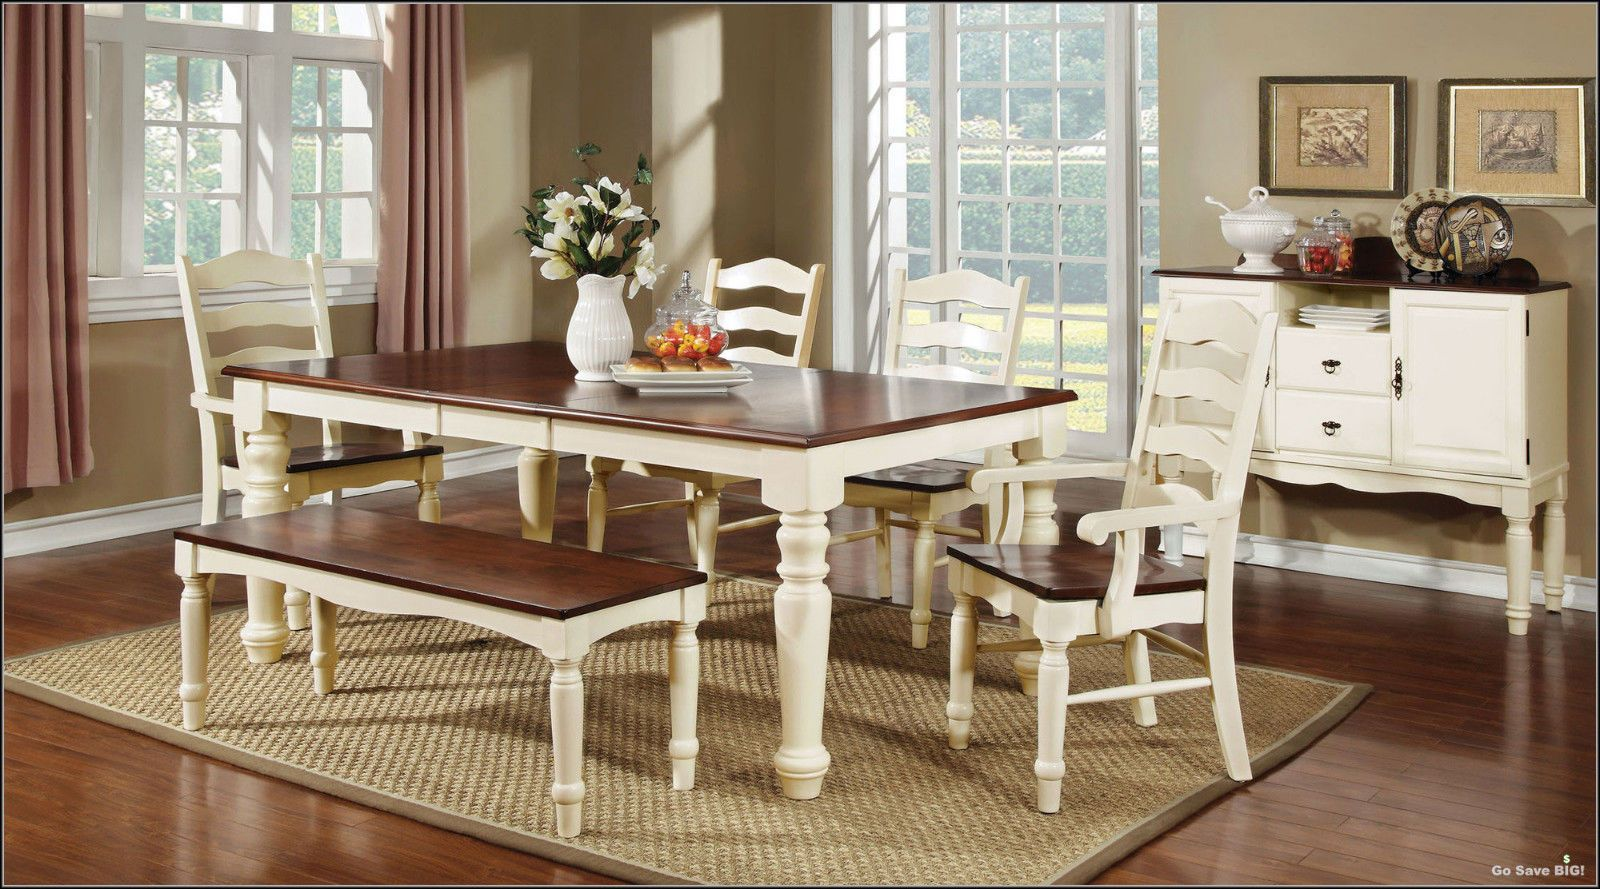 6 Pc Dining Set Contemporary Farmhouse Country Style Table Chairs Kitchen Room Country Dining Tables Wood Dining Room Wood Dining Room Table